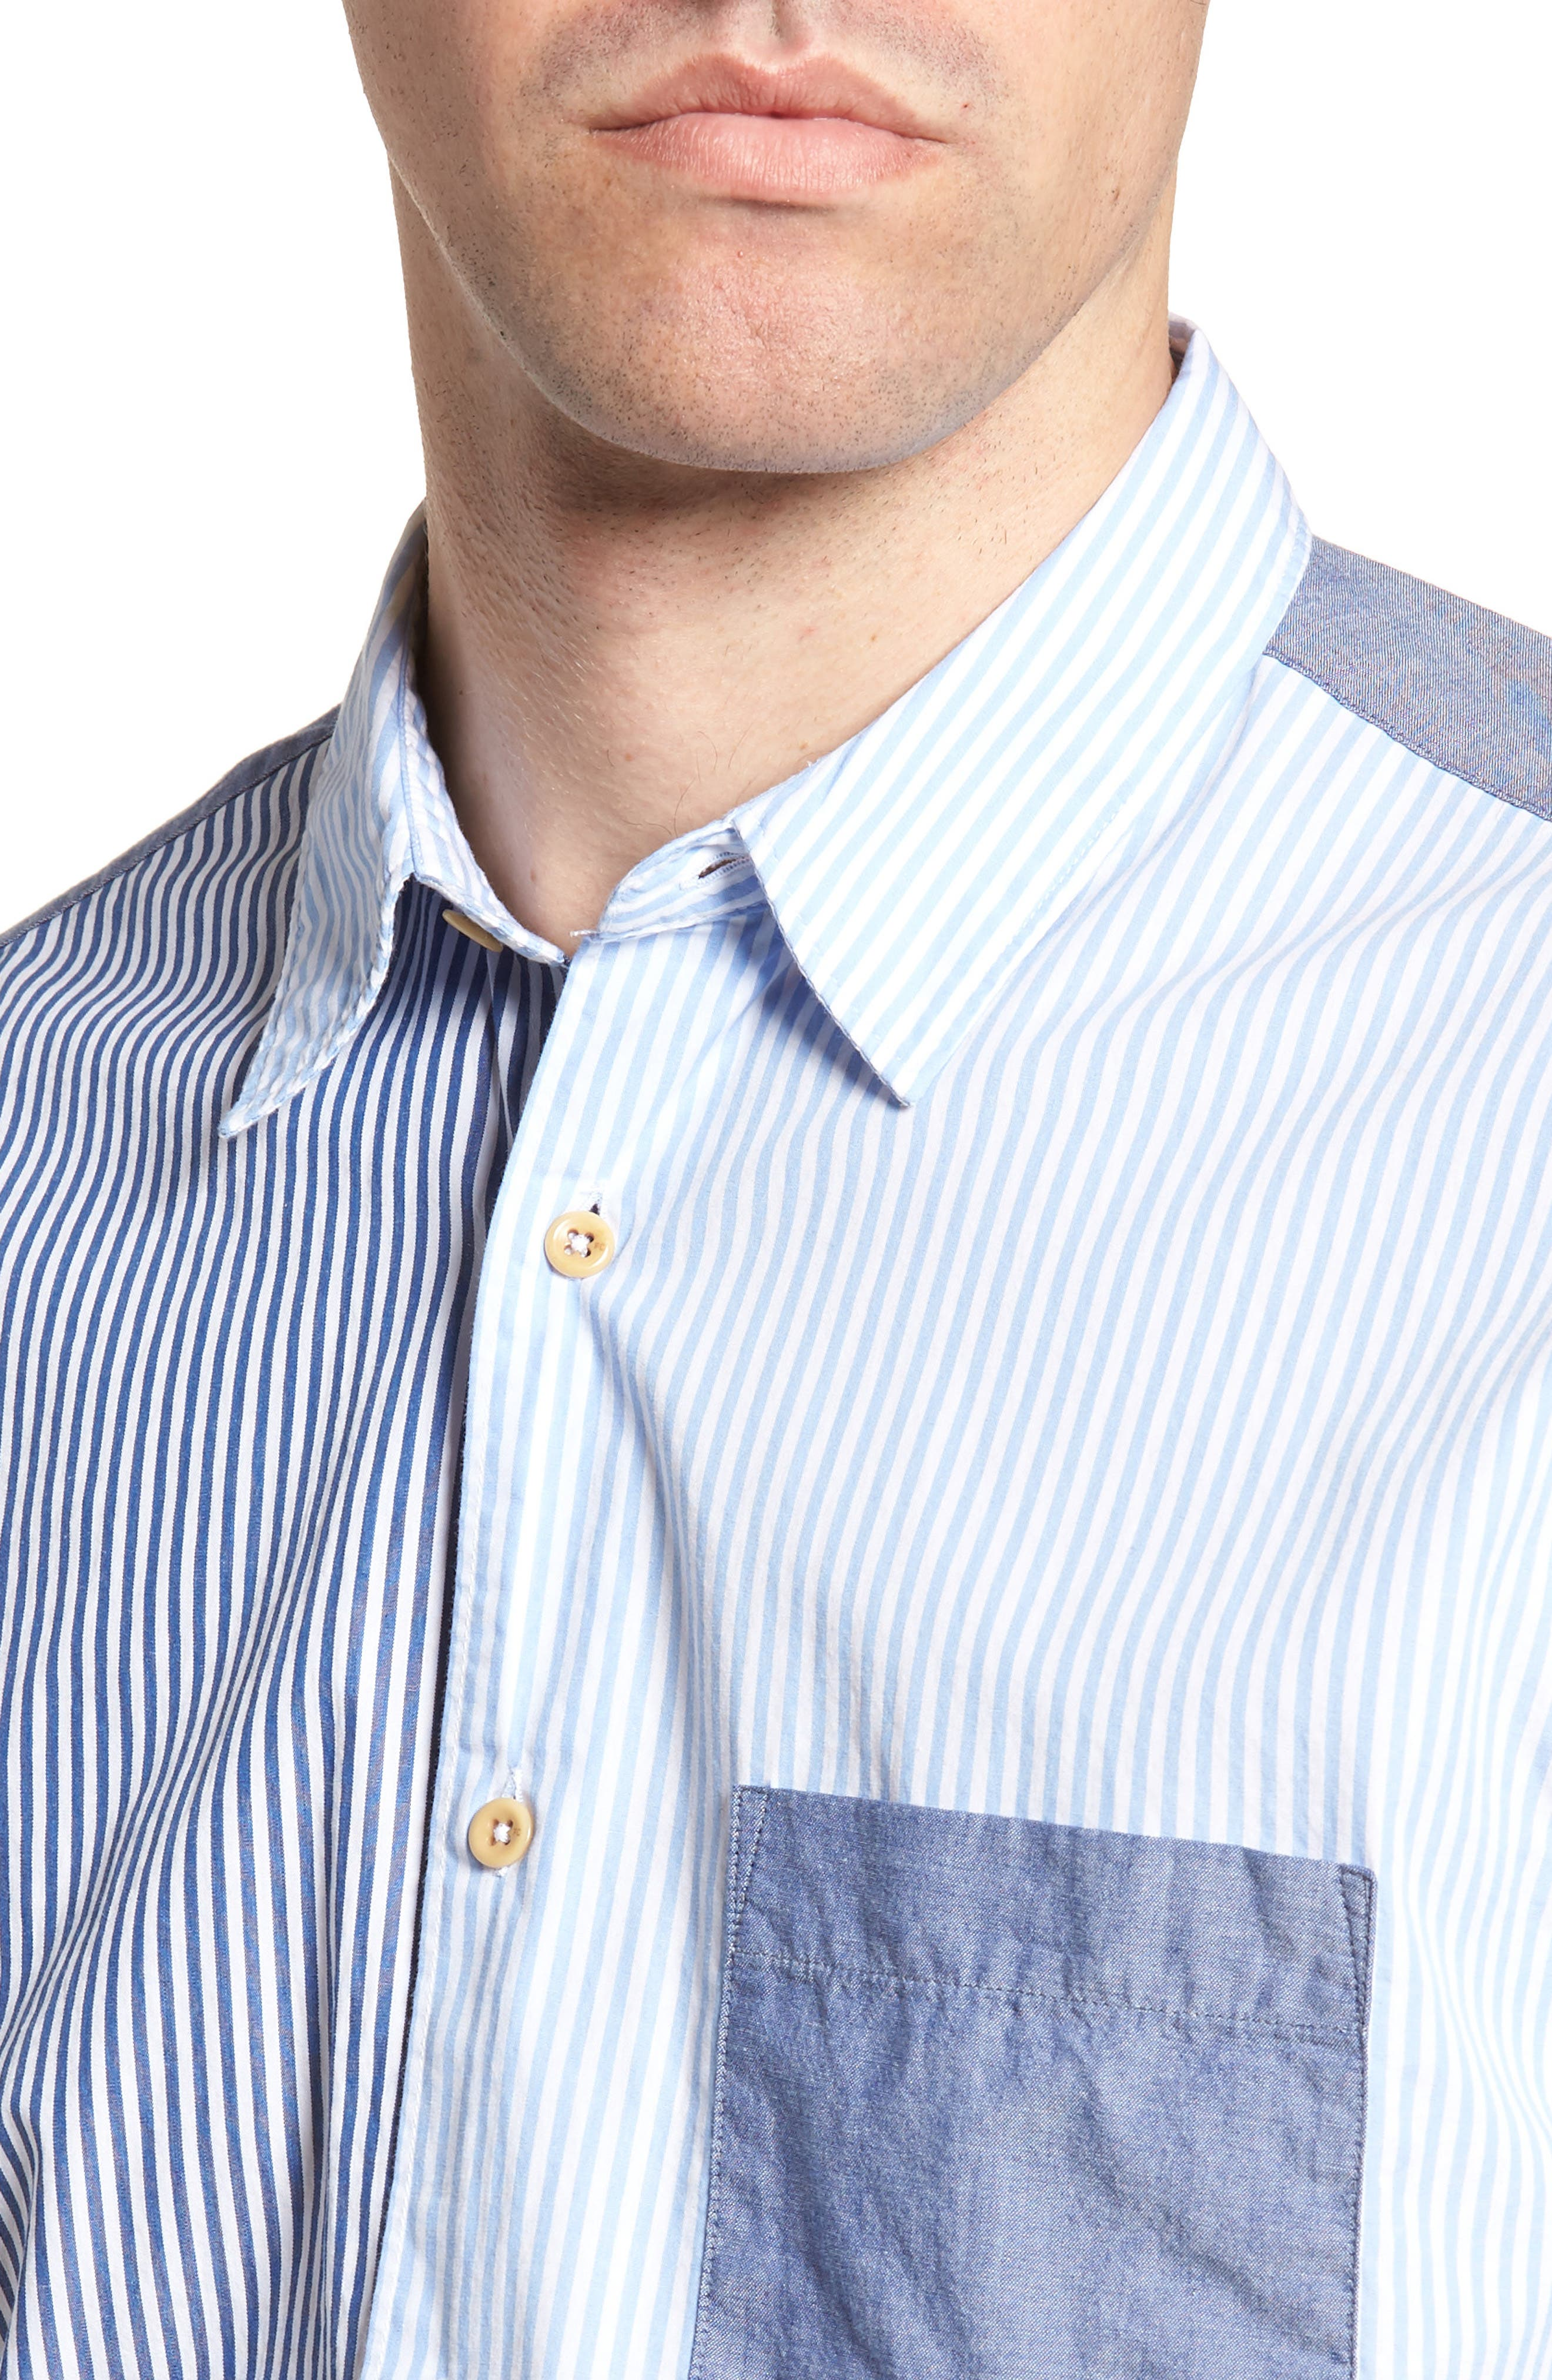 Patchwork Relaxed Fit Sport Shirt,                             Alternate thumbnail 4, color,                             416